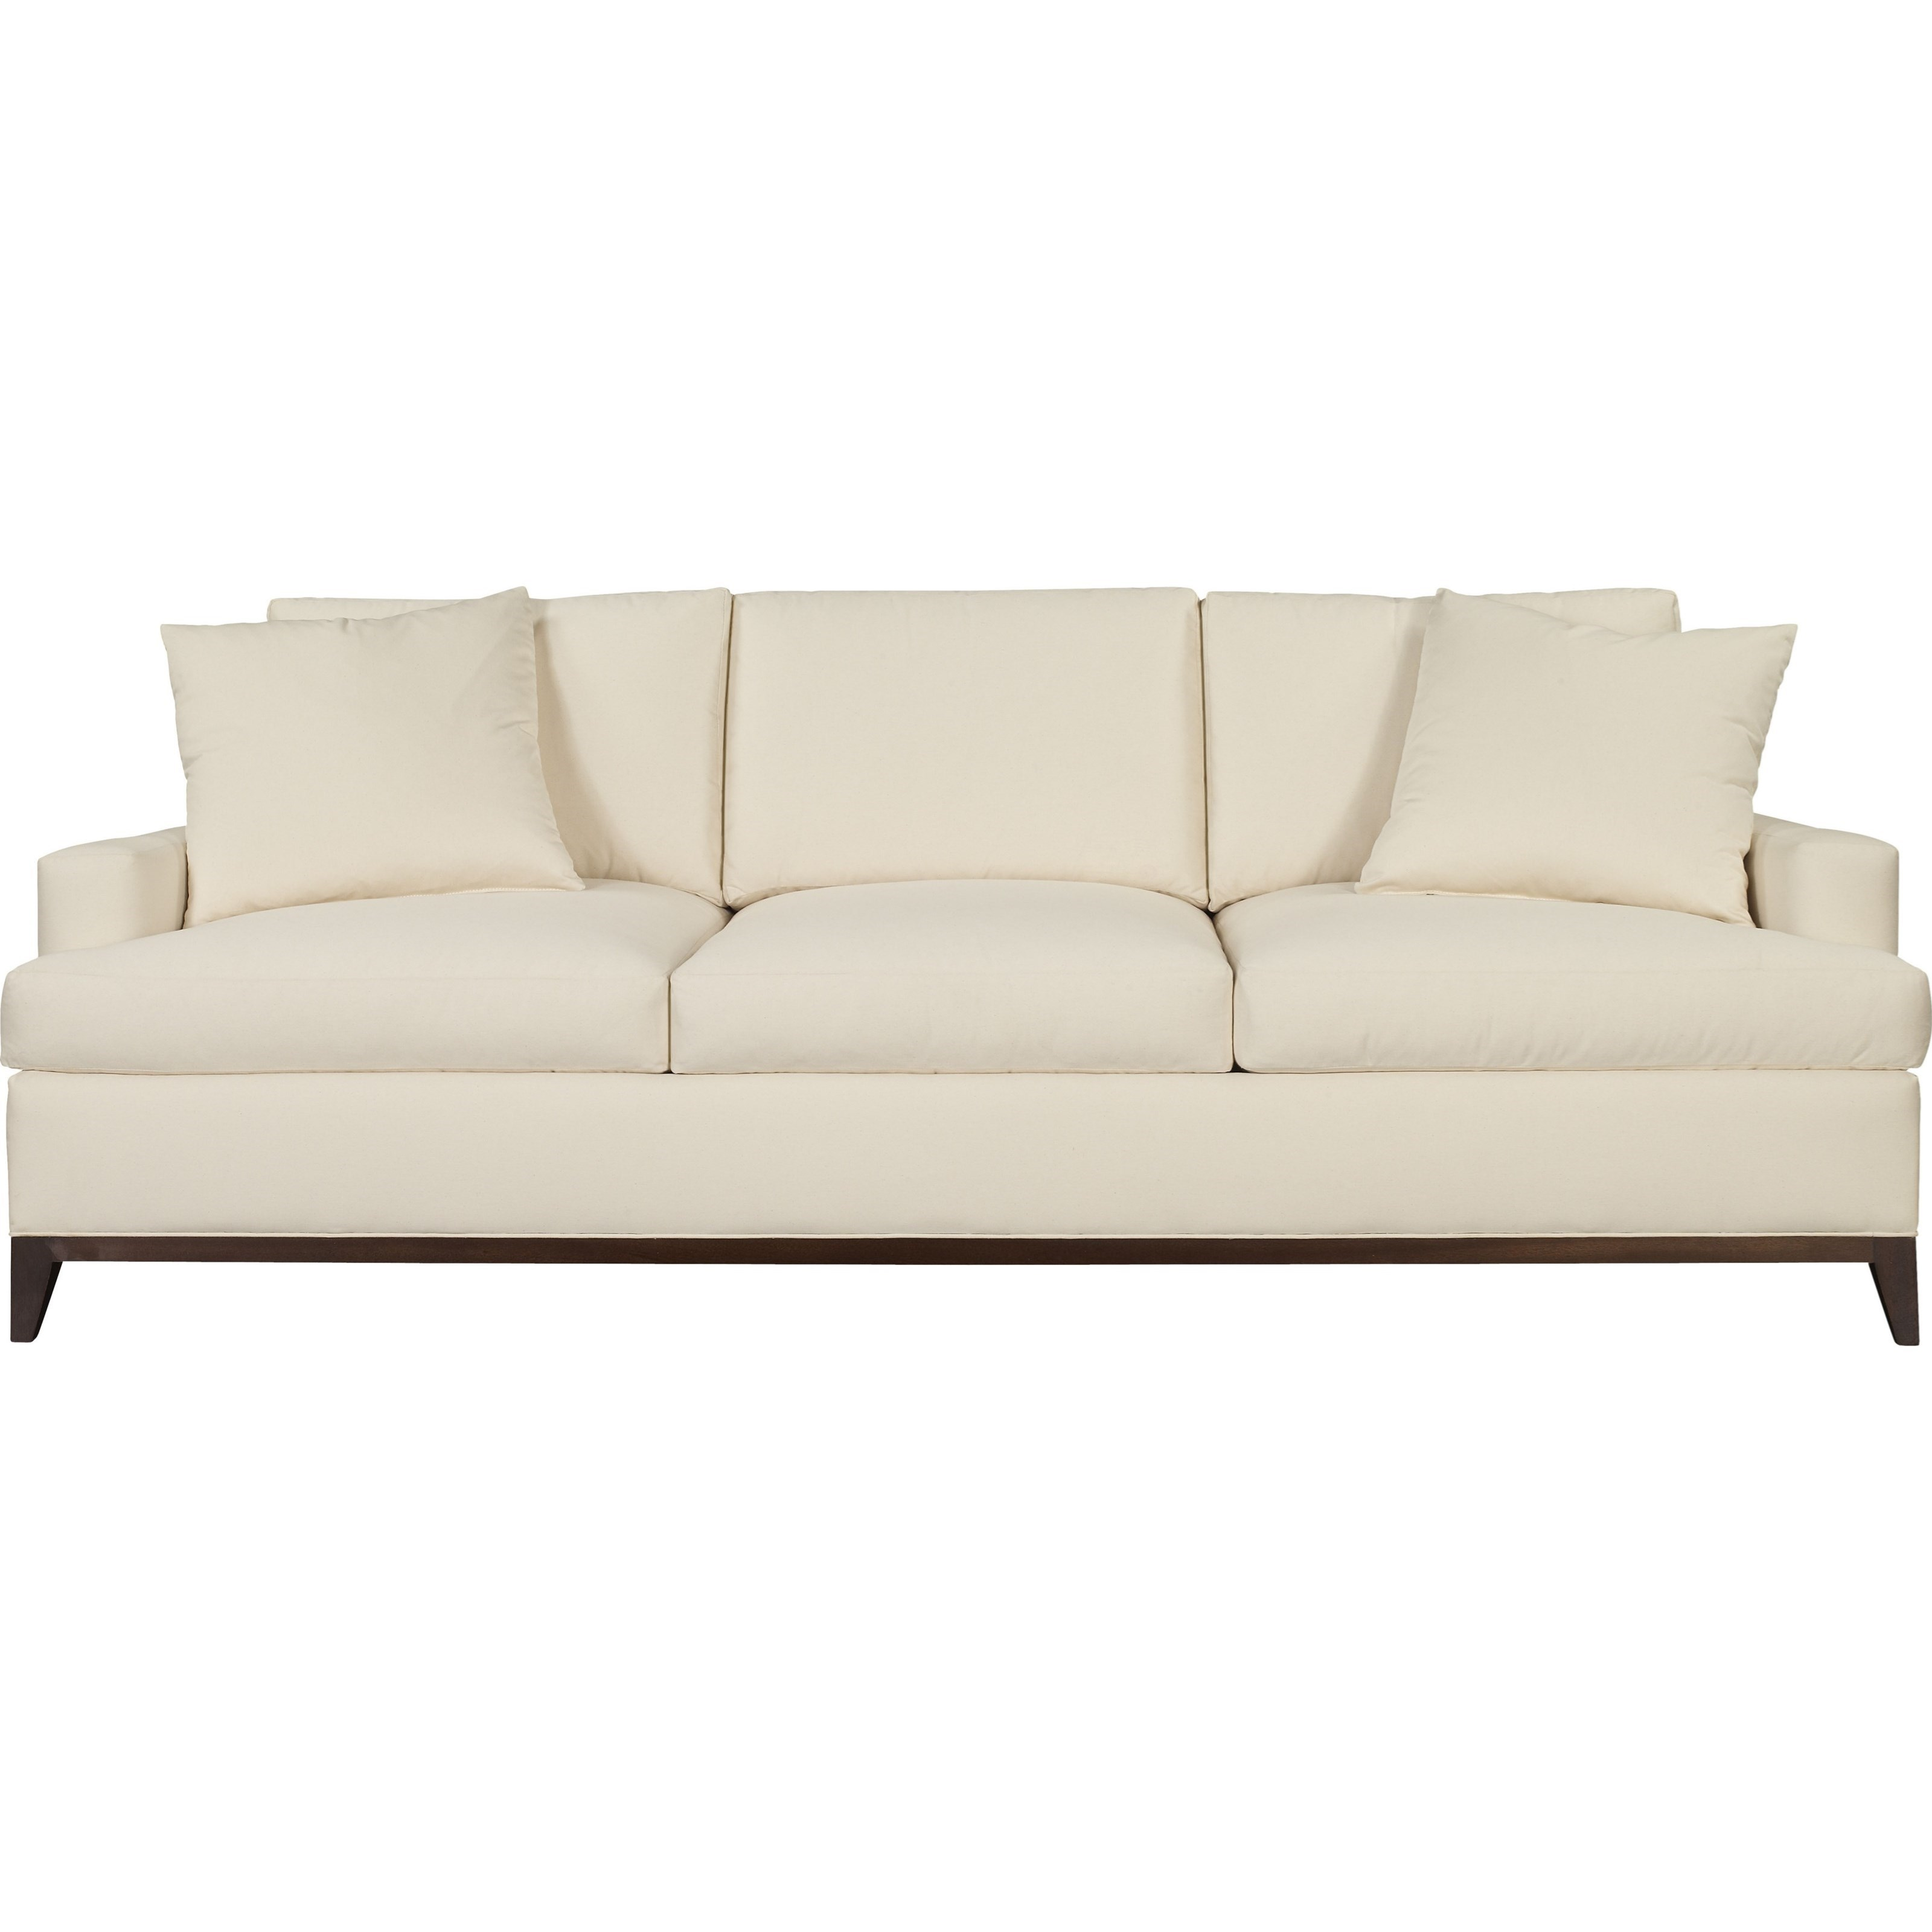 1911 9th Street Sofa by Hickory Chair at Jacksonville Furniture Mart